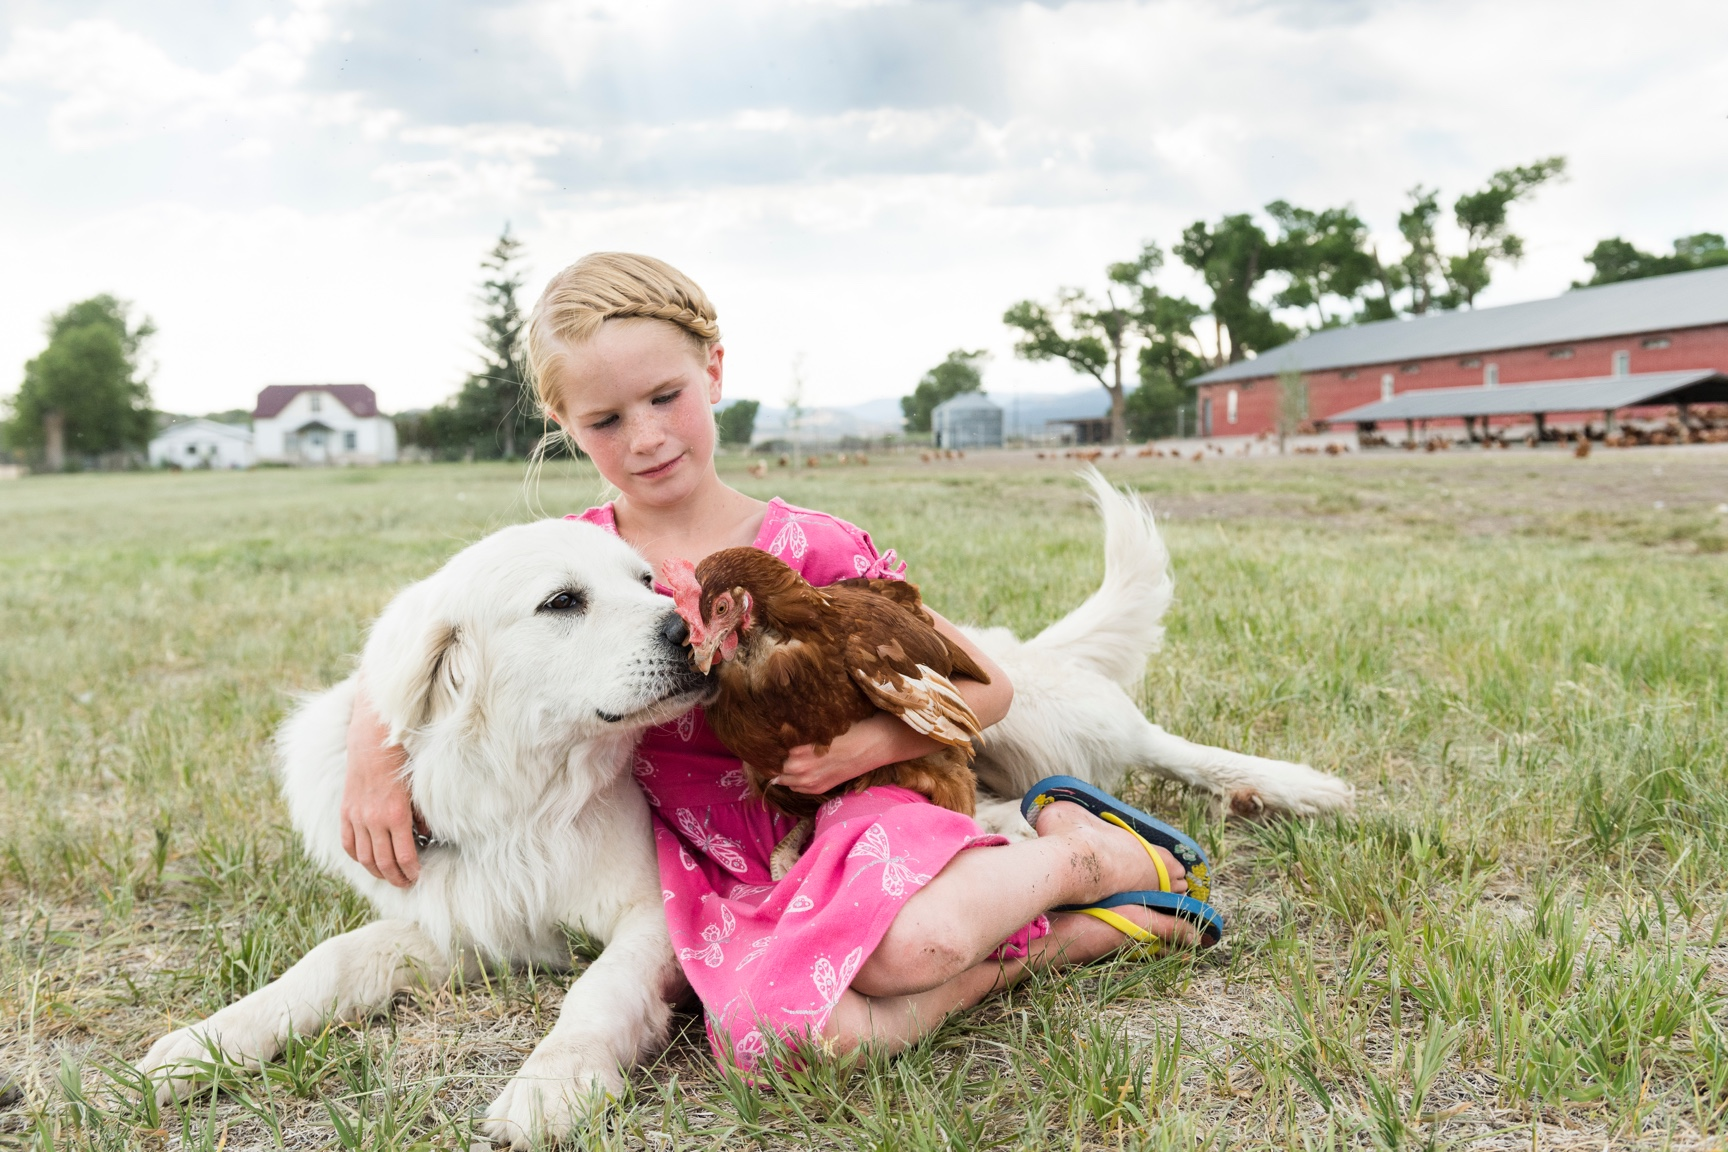 A large white dog sniffs a brown chicken being held by a girl in a pink dress.